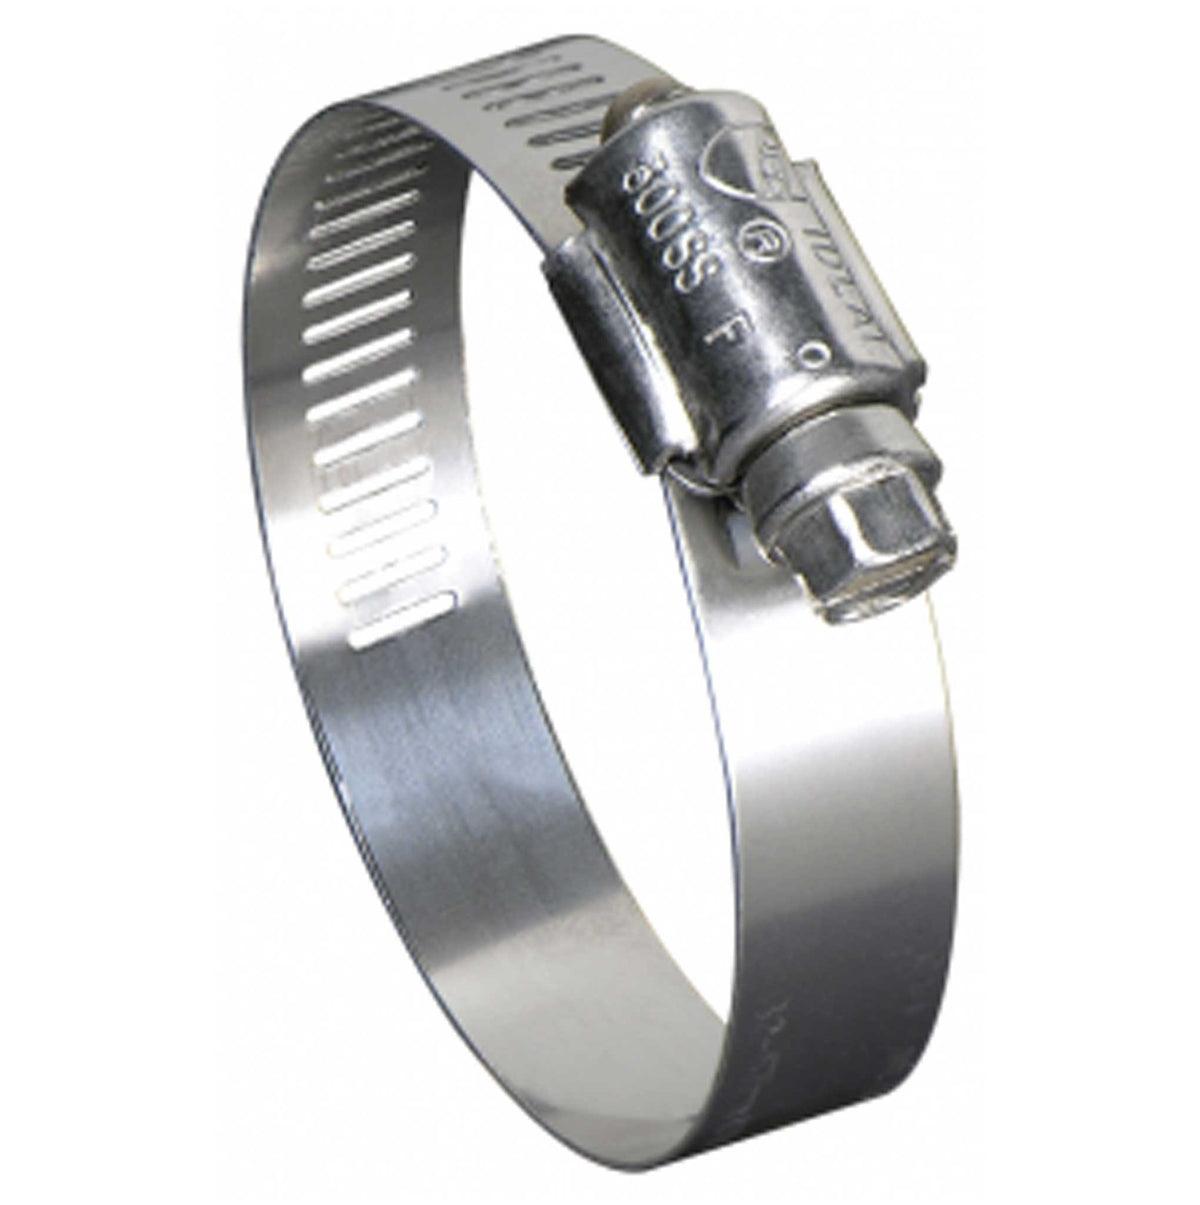 Stainless Steel Hose Clamps